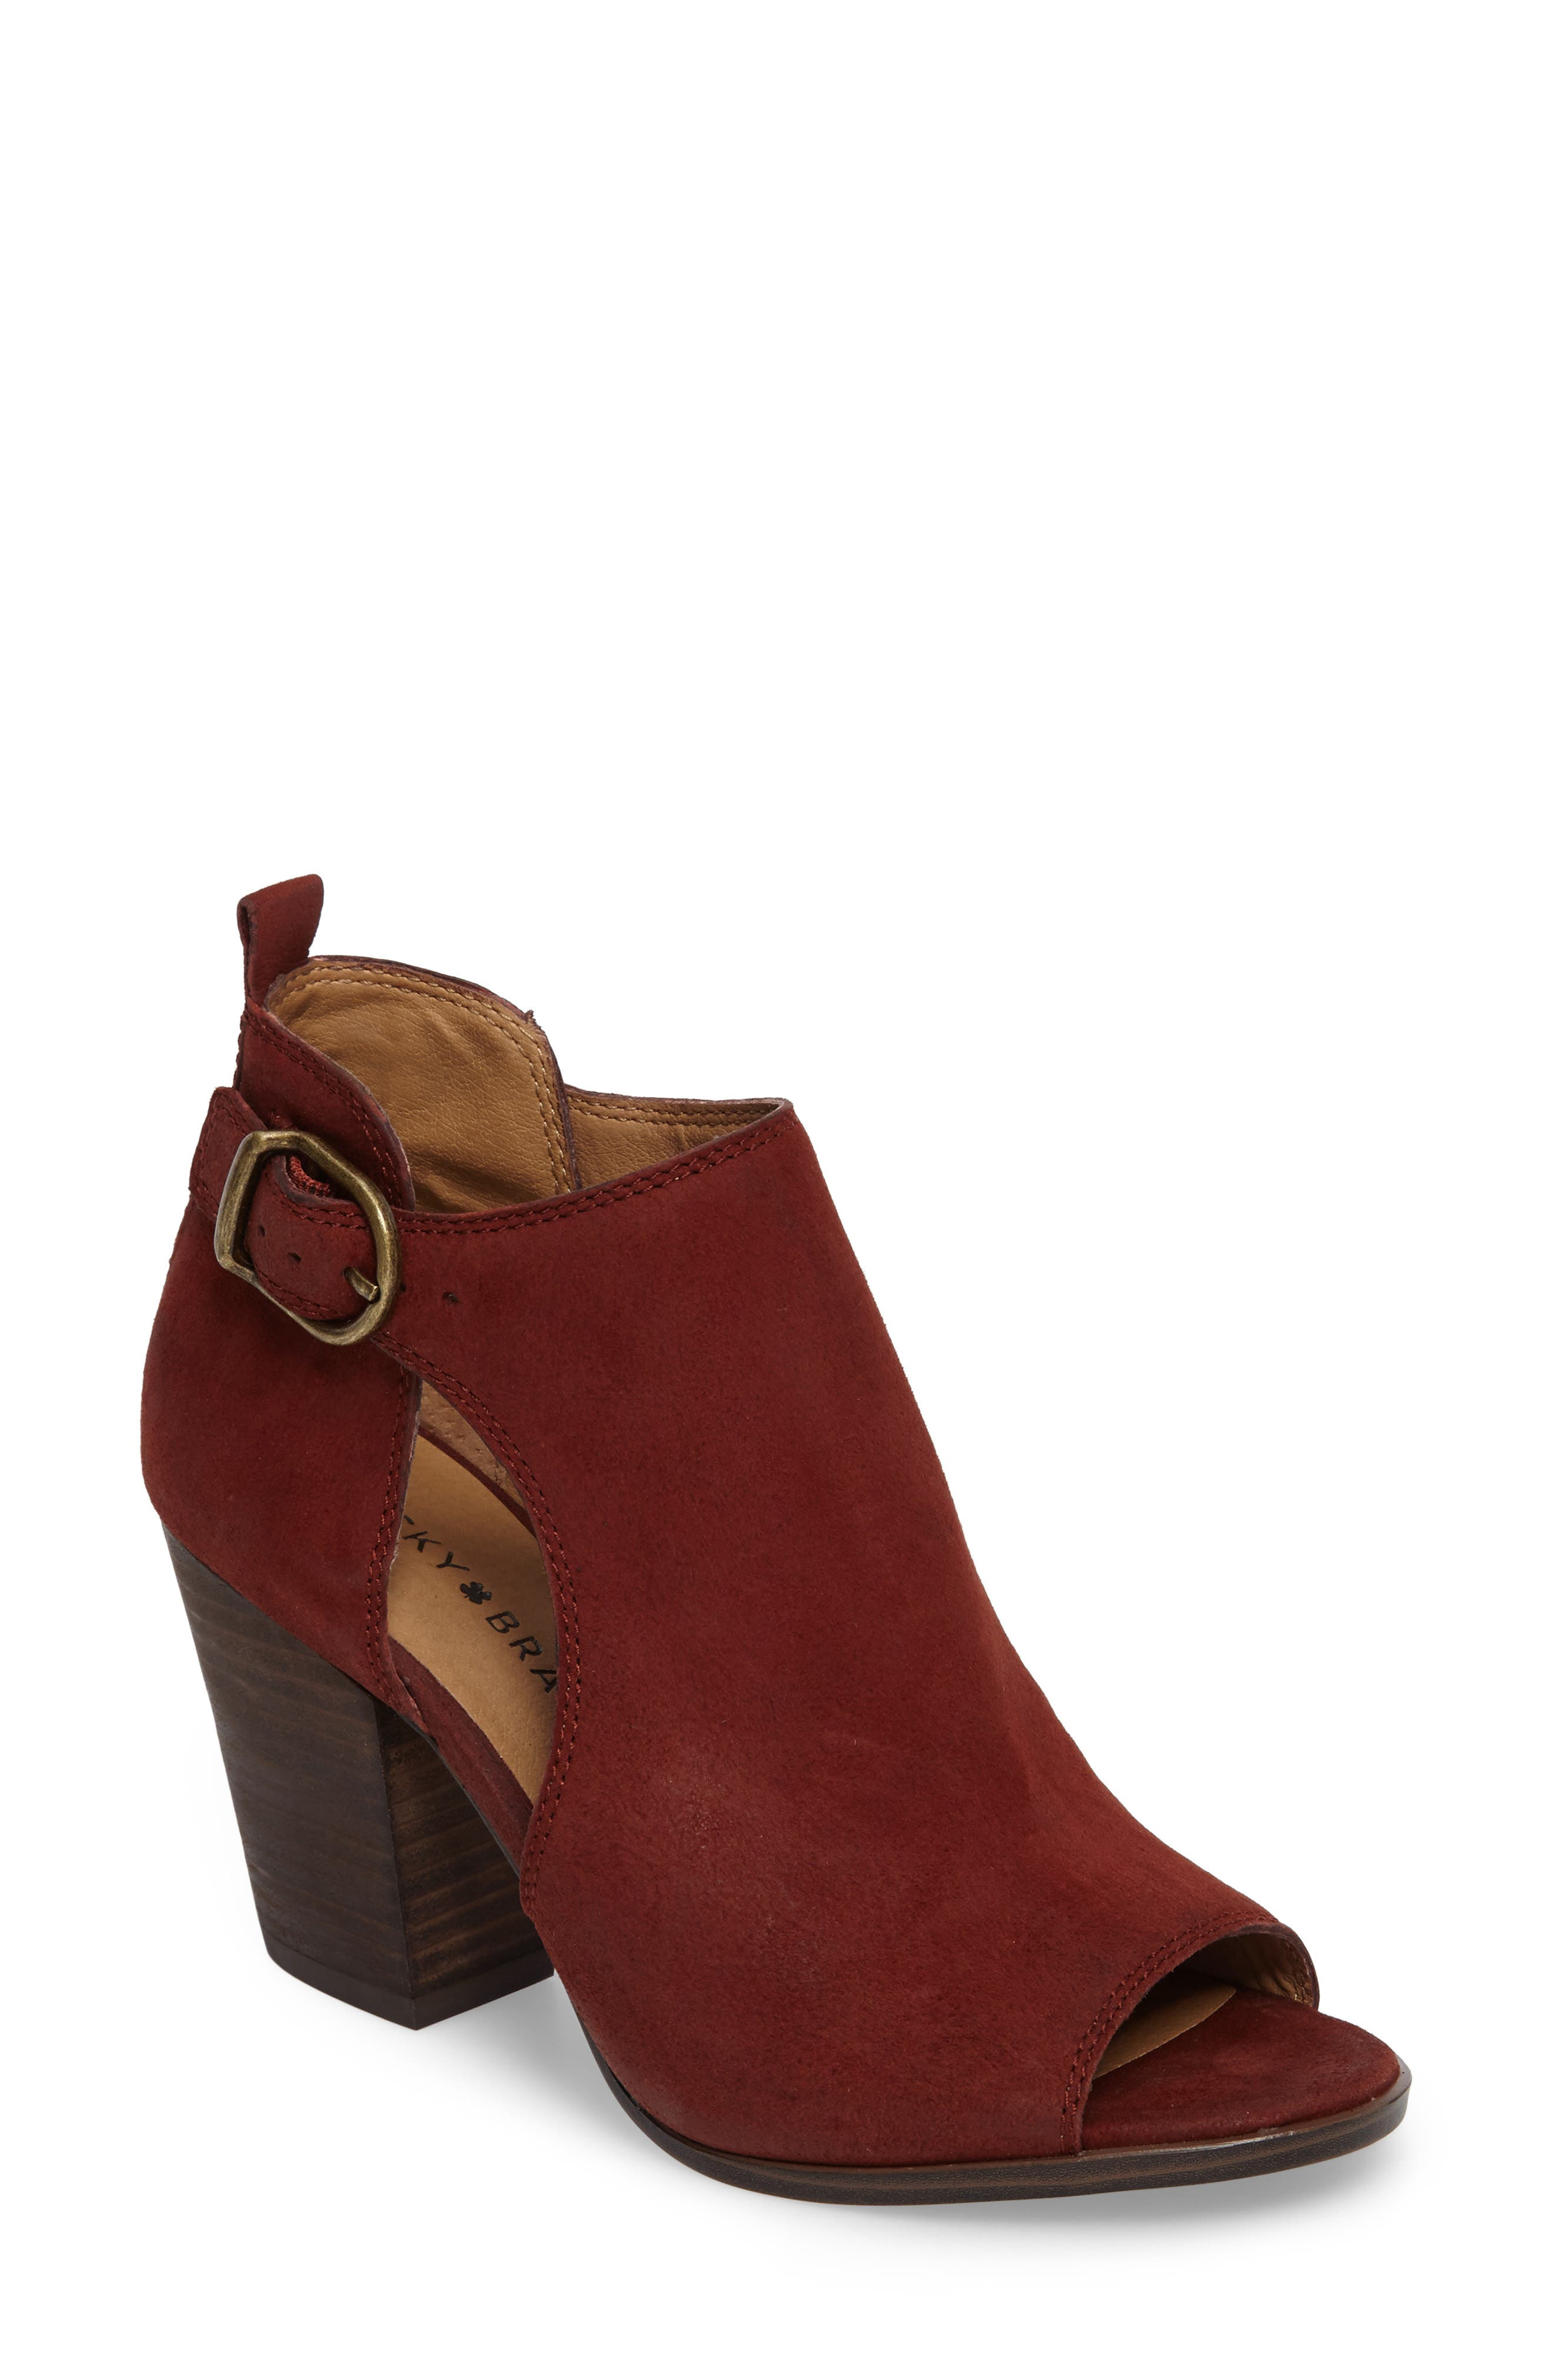 Oona Open Side Bootie,                             Main thumbnail 1, color,                             Sable Leather